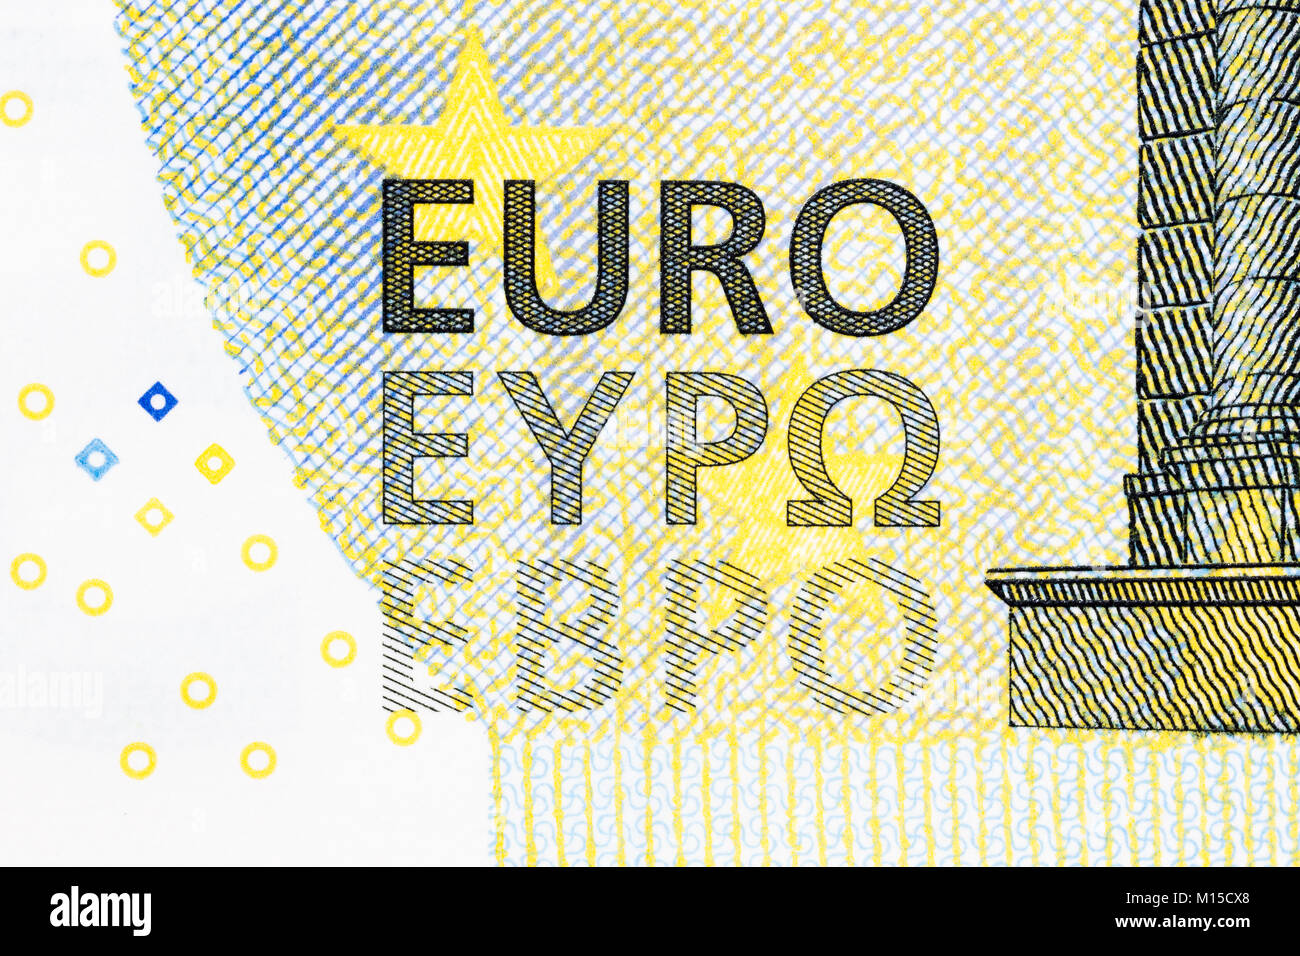 Euro sign of five banknote.  - Stock Image